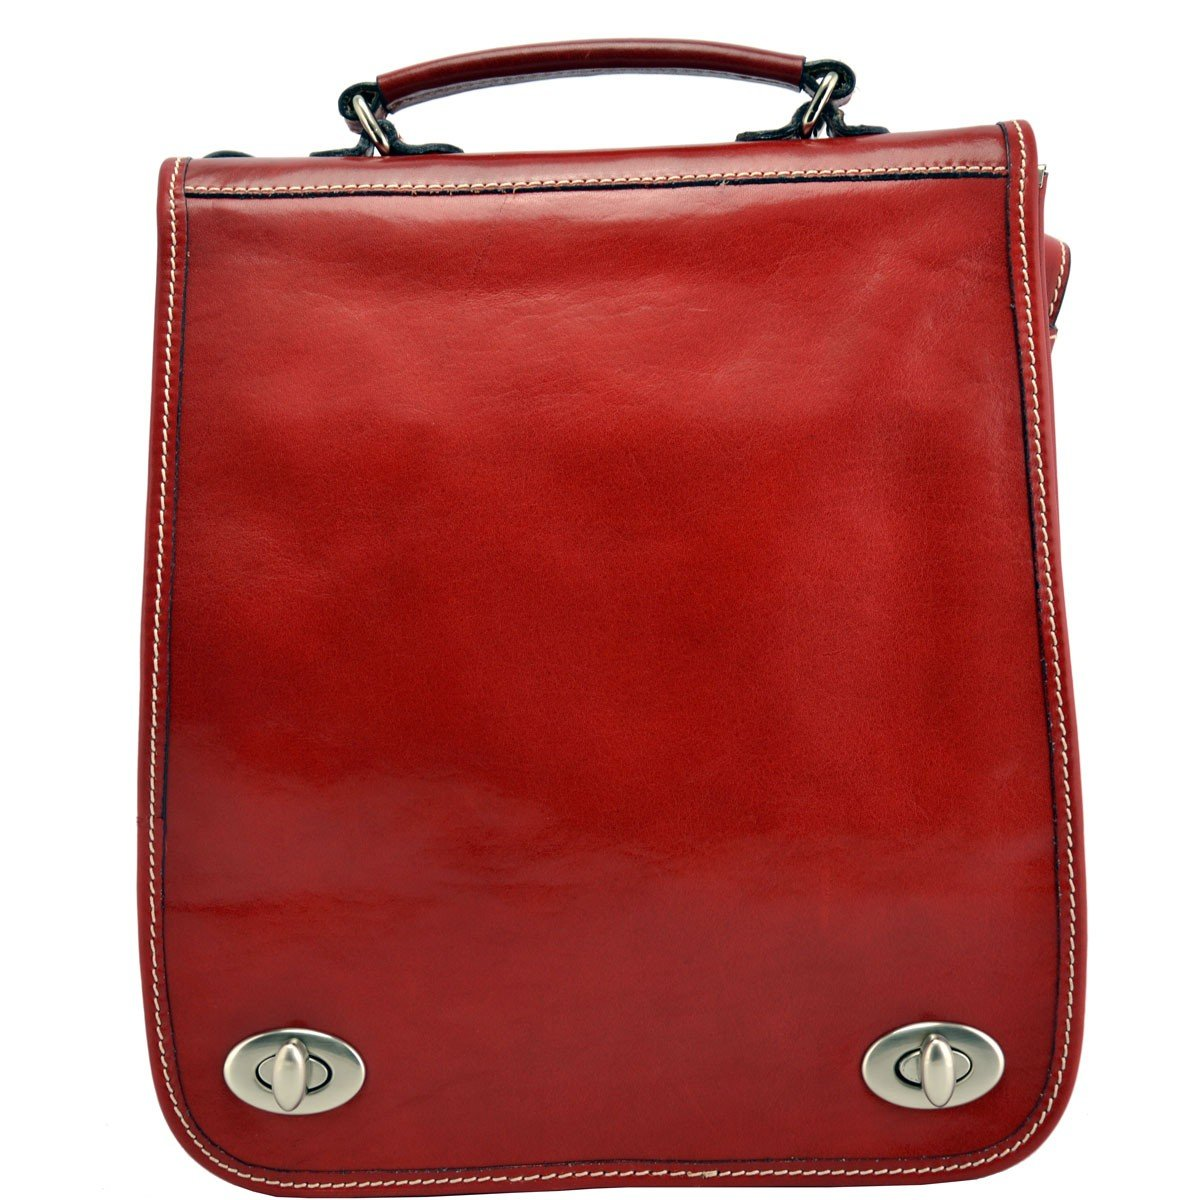 Dream Leather Bags Made in Italy Genuine Leather メンズ US サイズ: 1 カラー: レッド B071G18KPC